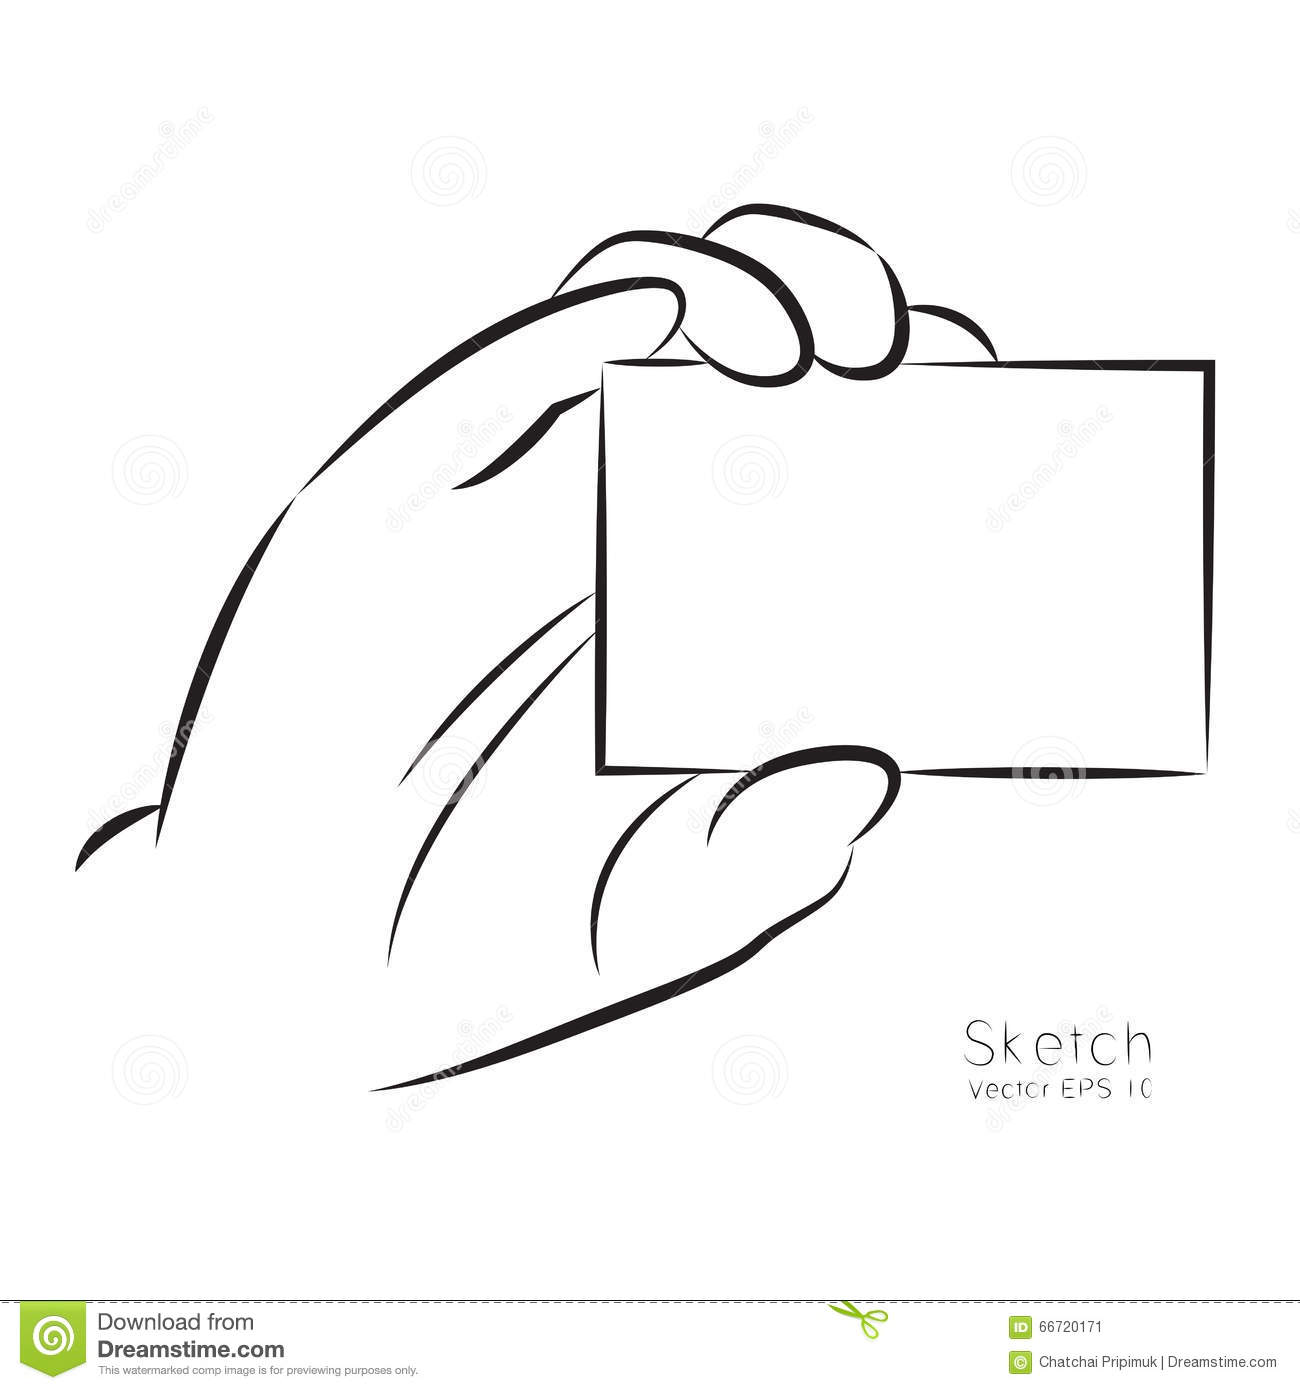 Card clipart business card Business clipart cards Business Hand